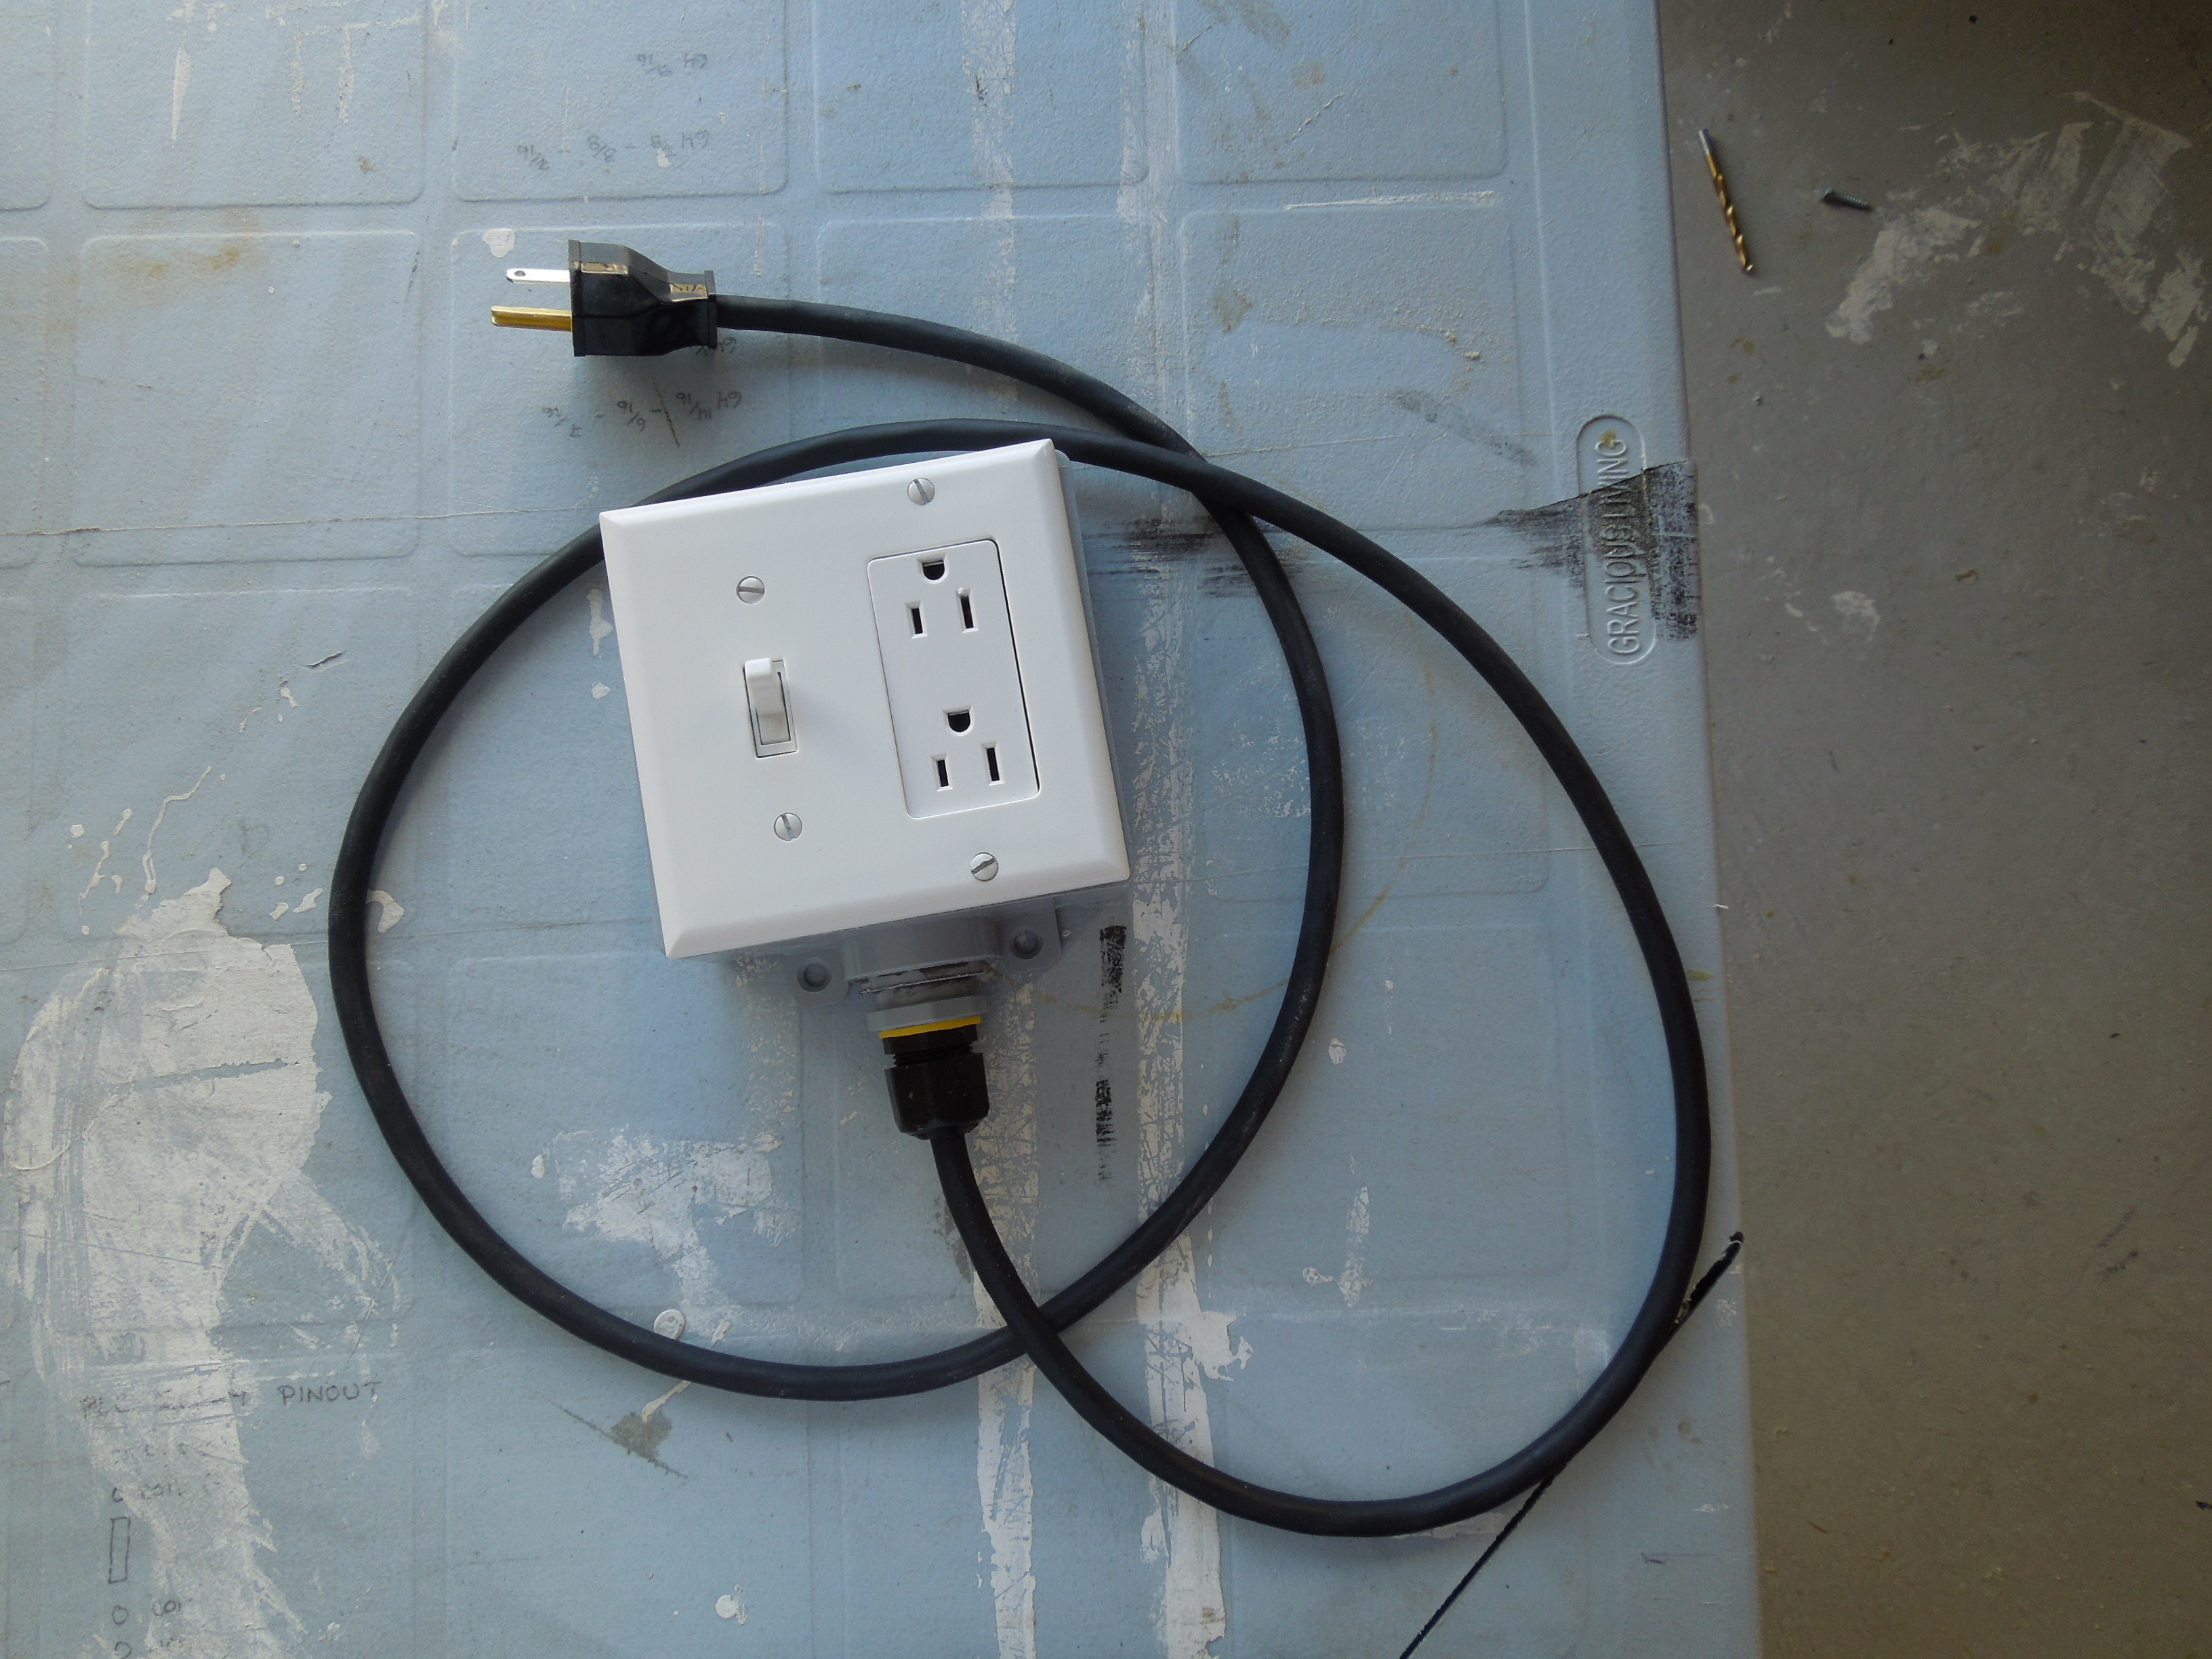 Garage Heater Extension Cord Diy Extension Cord With Built In Switch Safe Quick And Simple